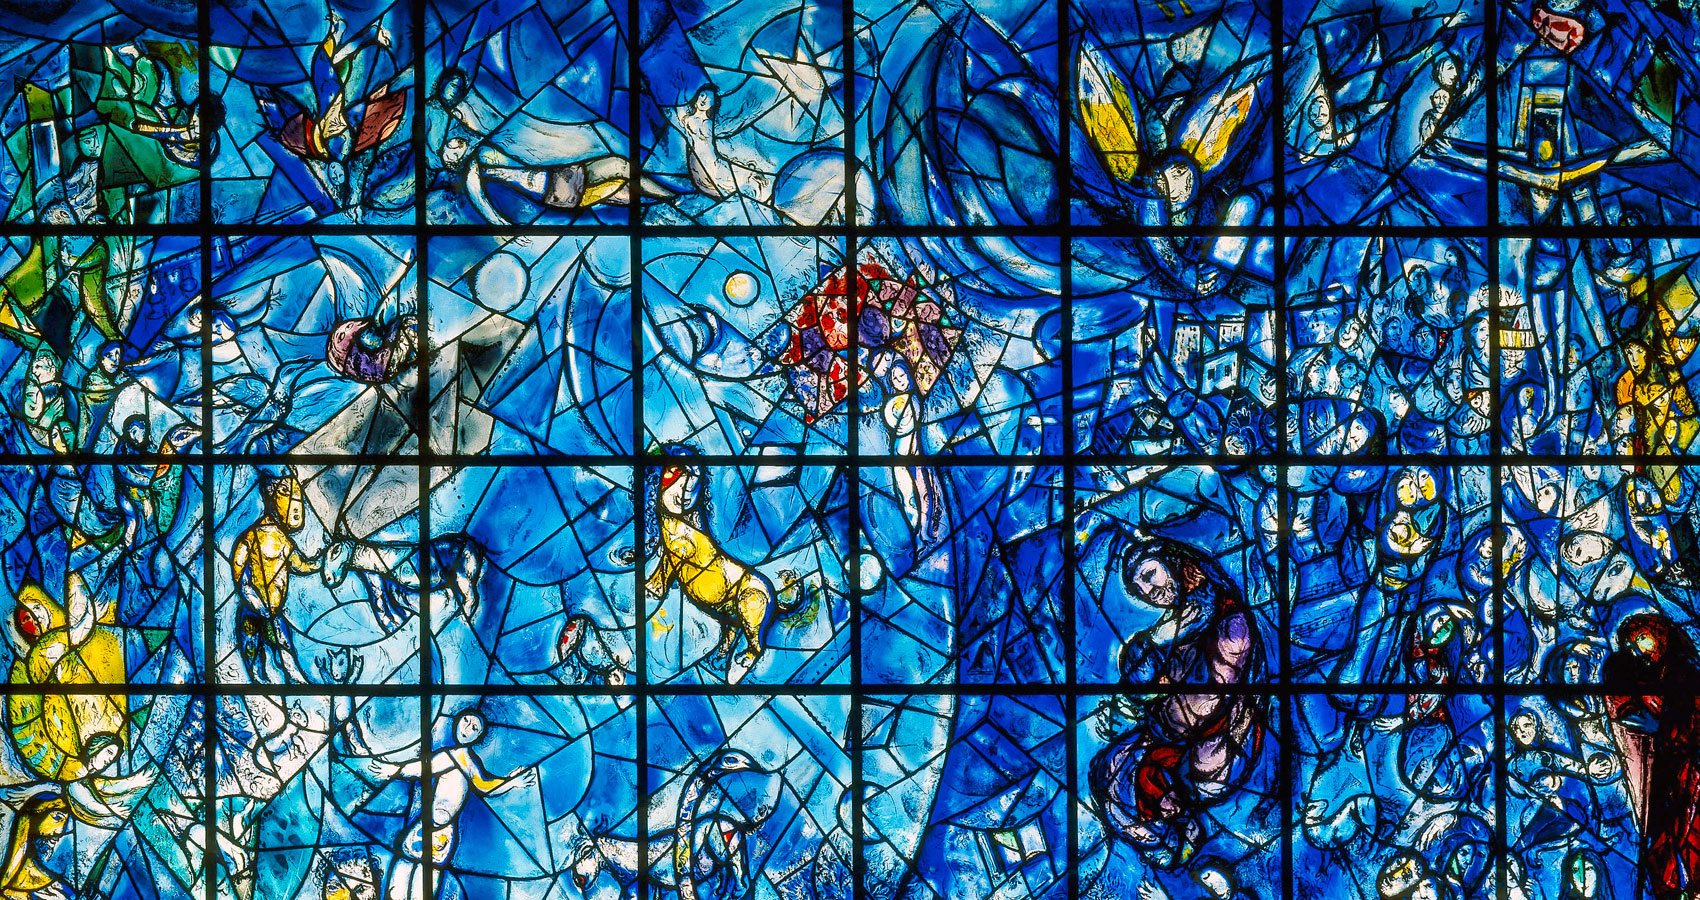 Christ and Chagall at the Gates of Jerusalem, written by Bob Jensen at Spillwords.com